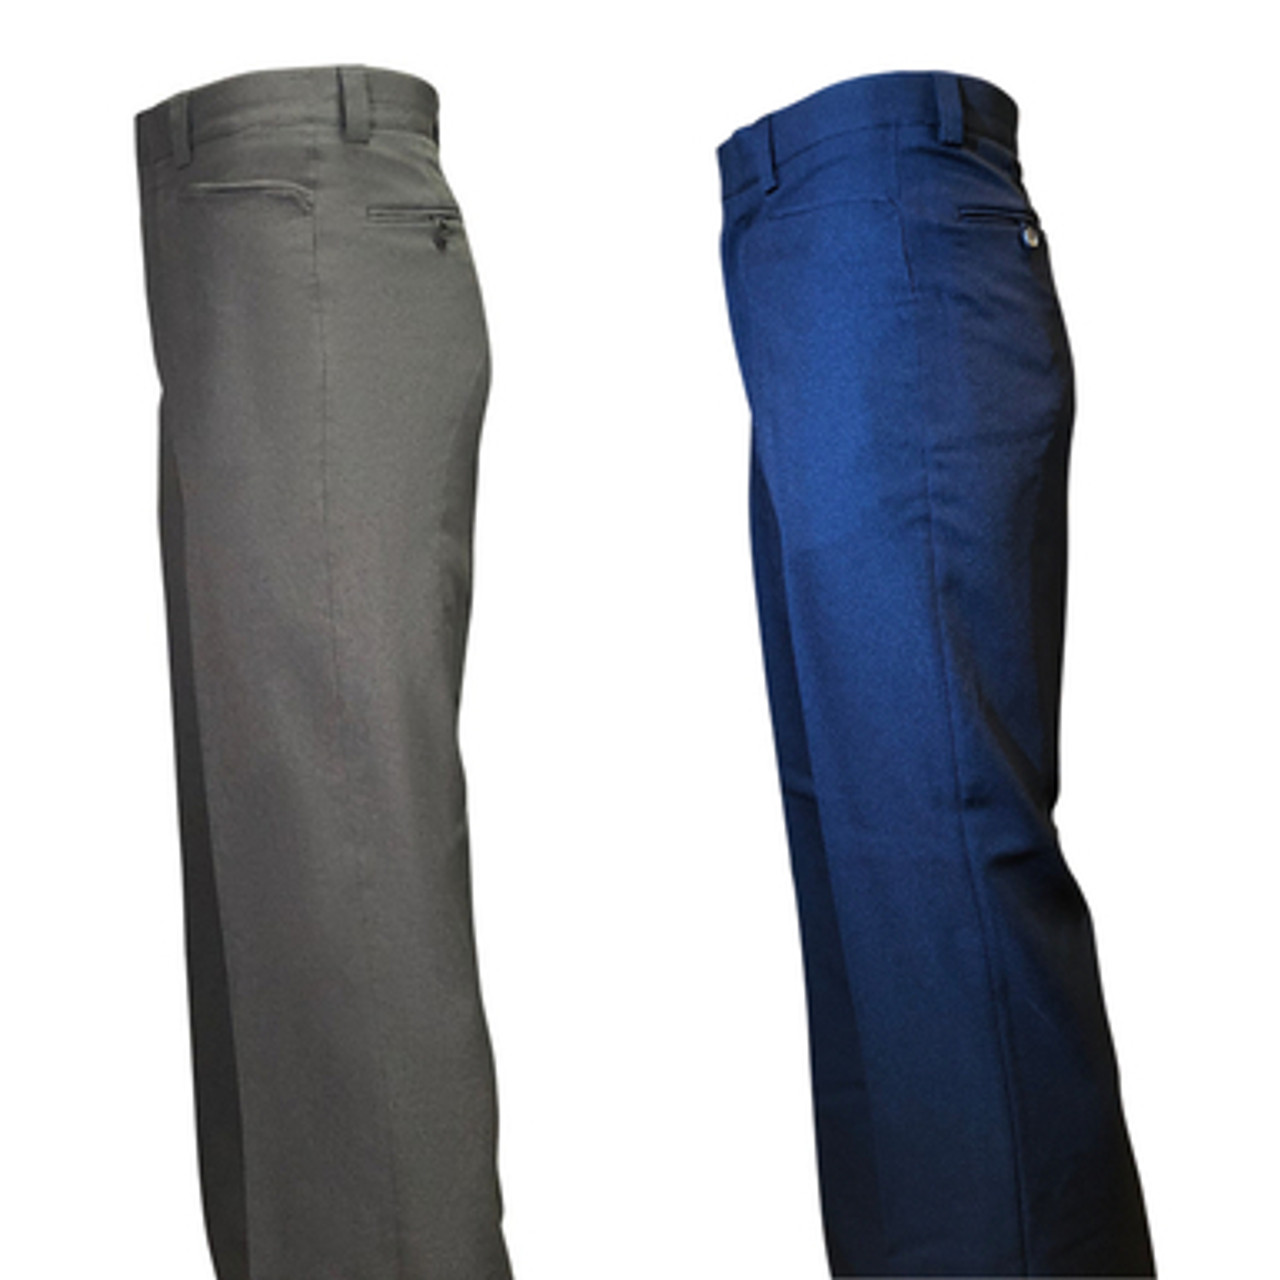 Black 100/% Polyester Flat Front Officials Pants with Western Cut Pockets and Belt Loops BKS-275 Smitty